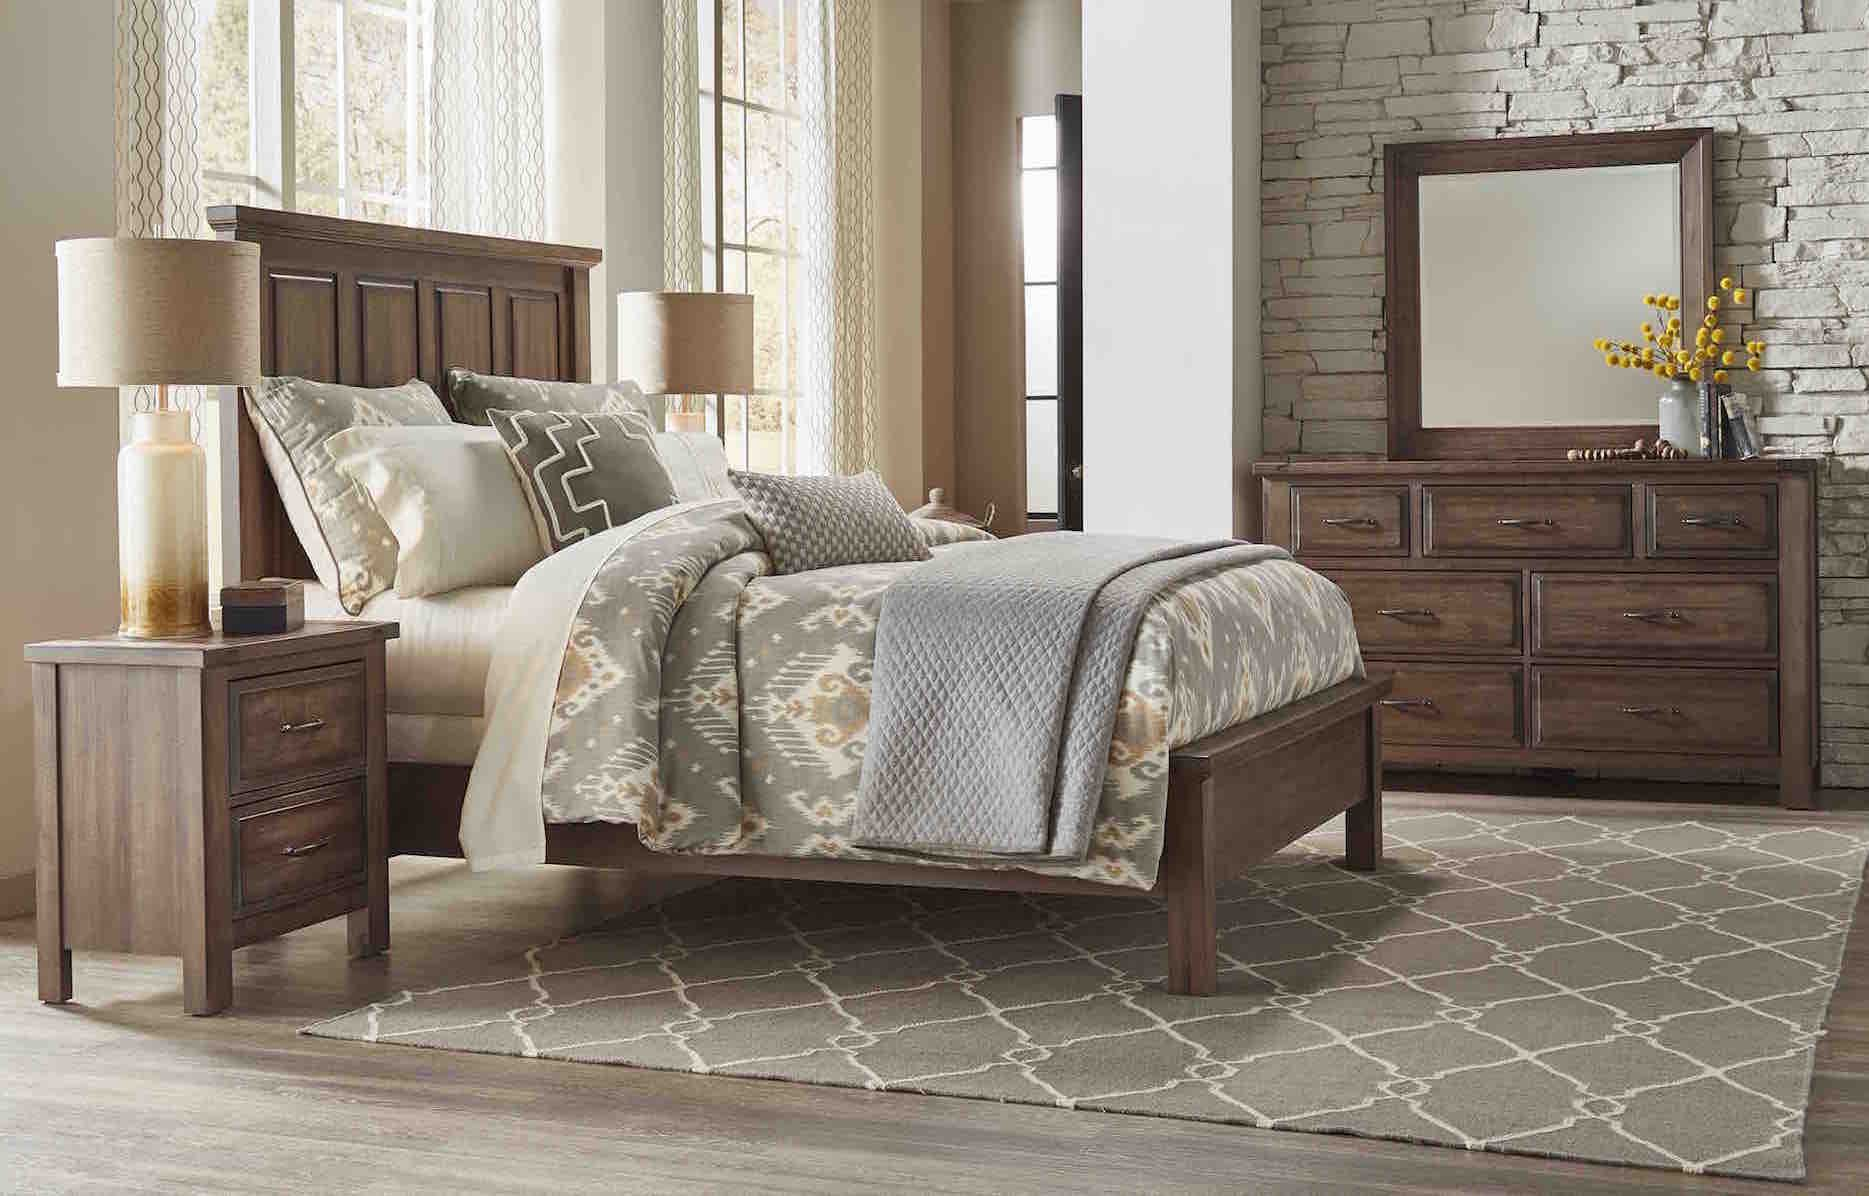 Maple Road Bedroom Group Oak Factory Outlet Furniture Store